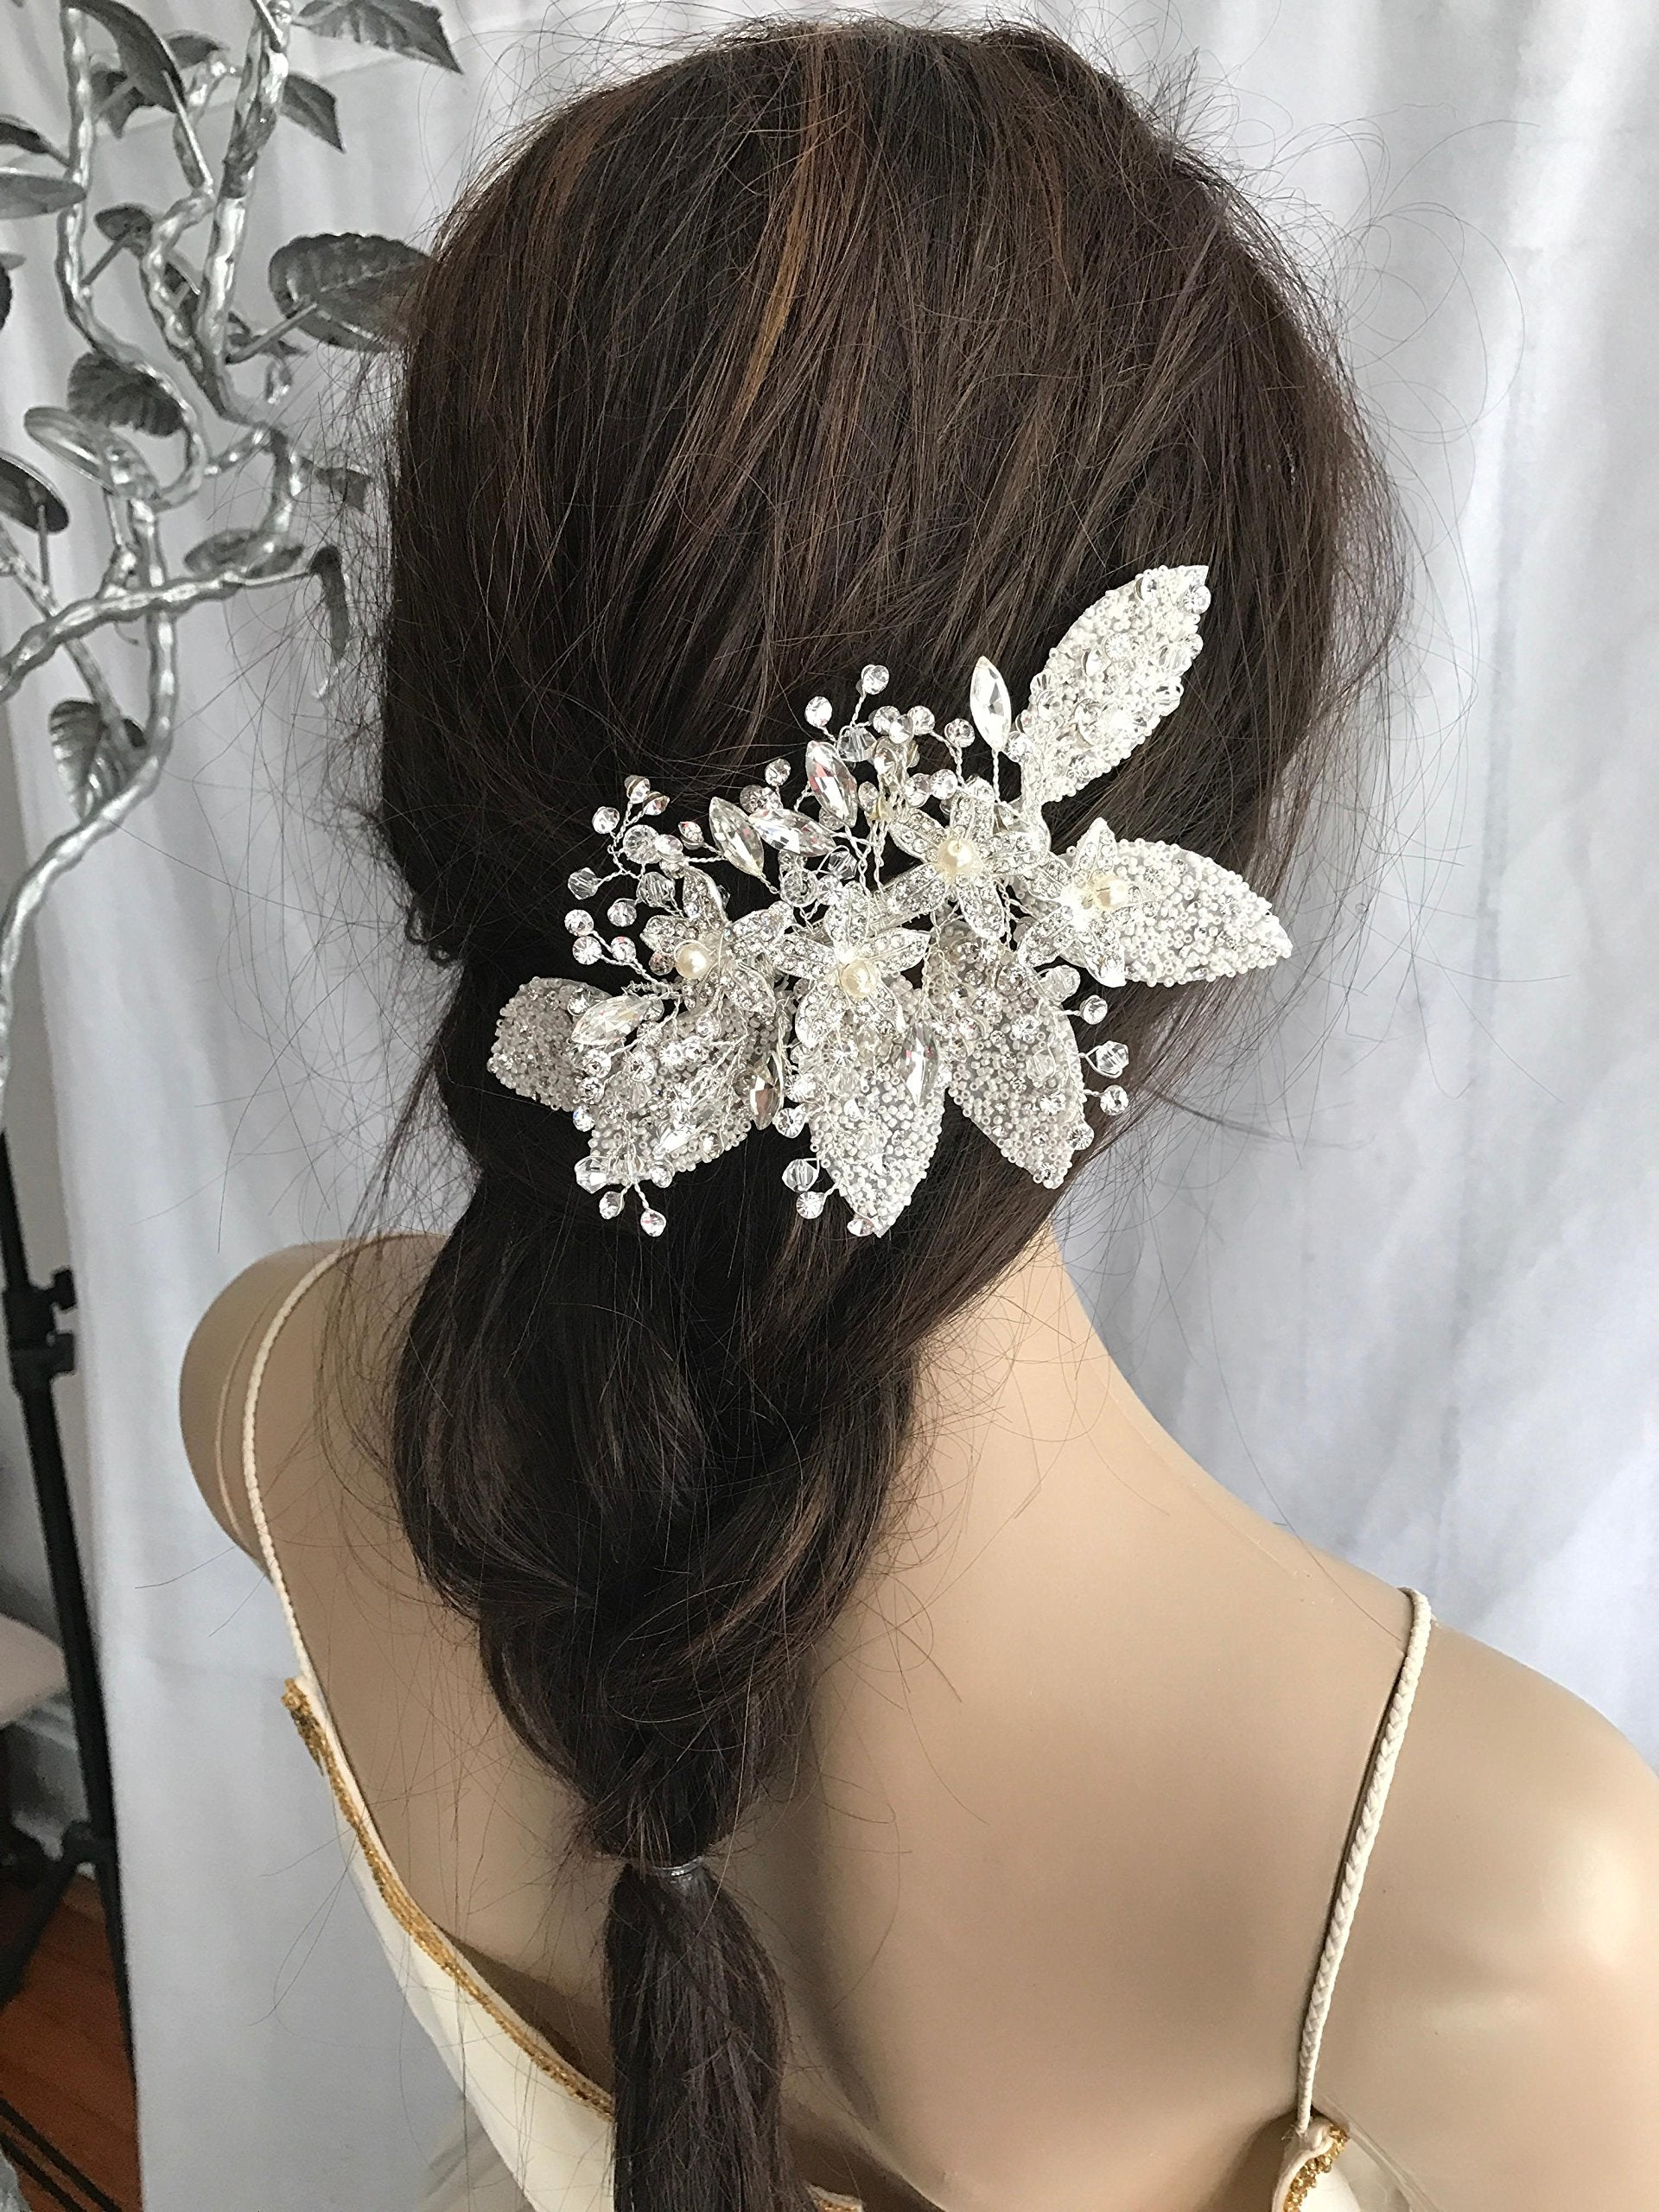 Bridal Hair Comb, White Pearl Headpiece, Floral Hairpiece, Hair Jewelry with petals, leaves, Prom hair accessories